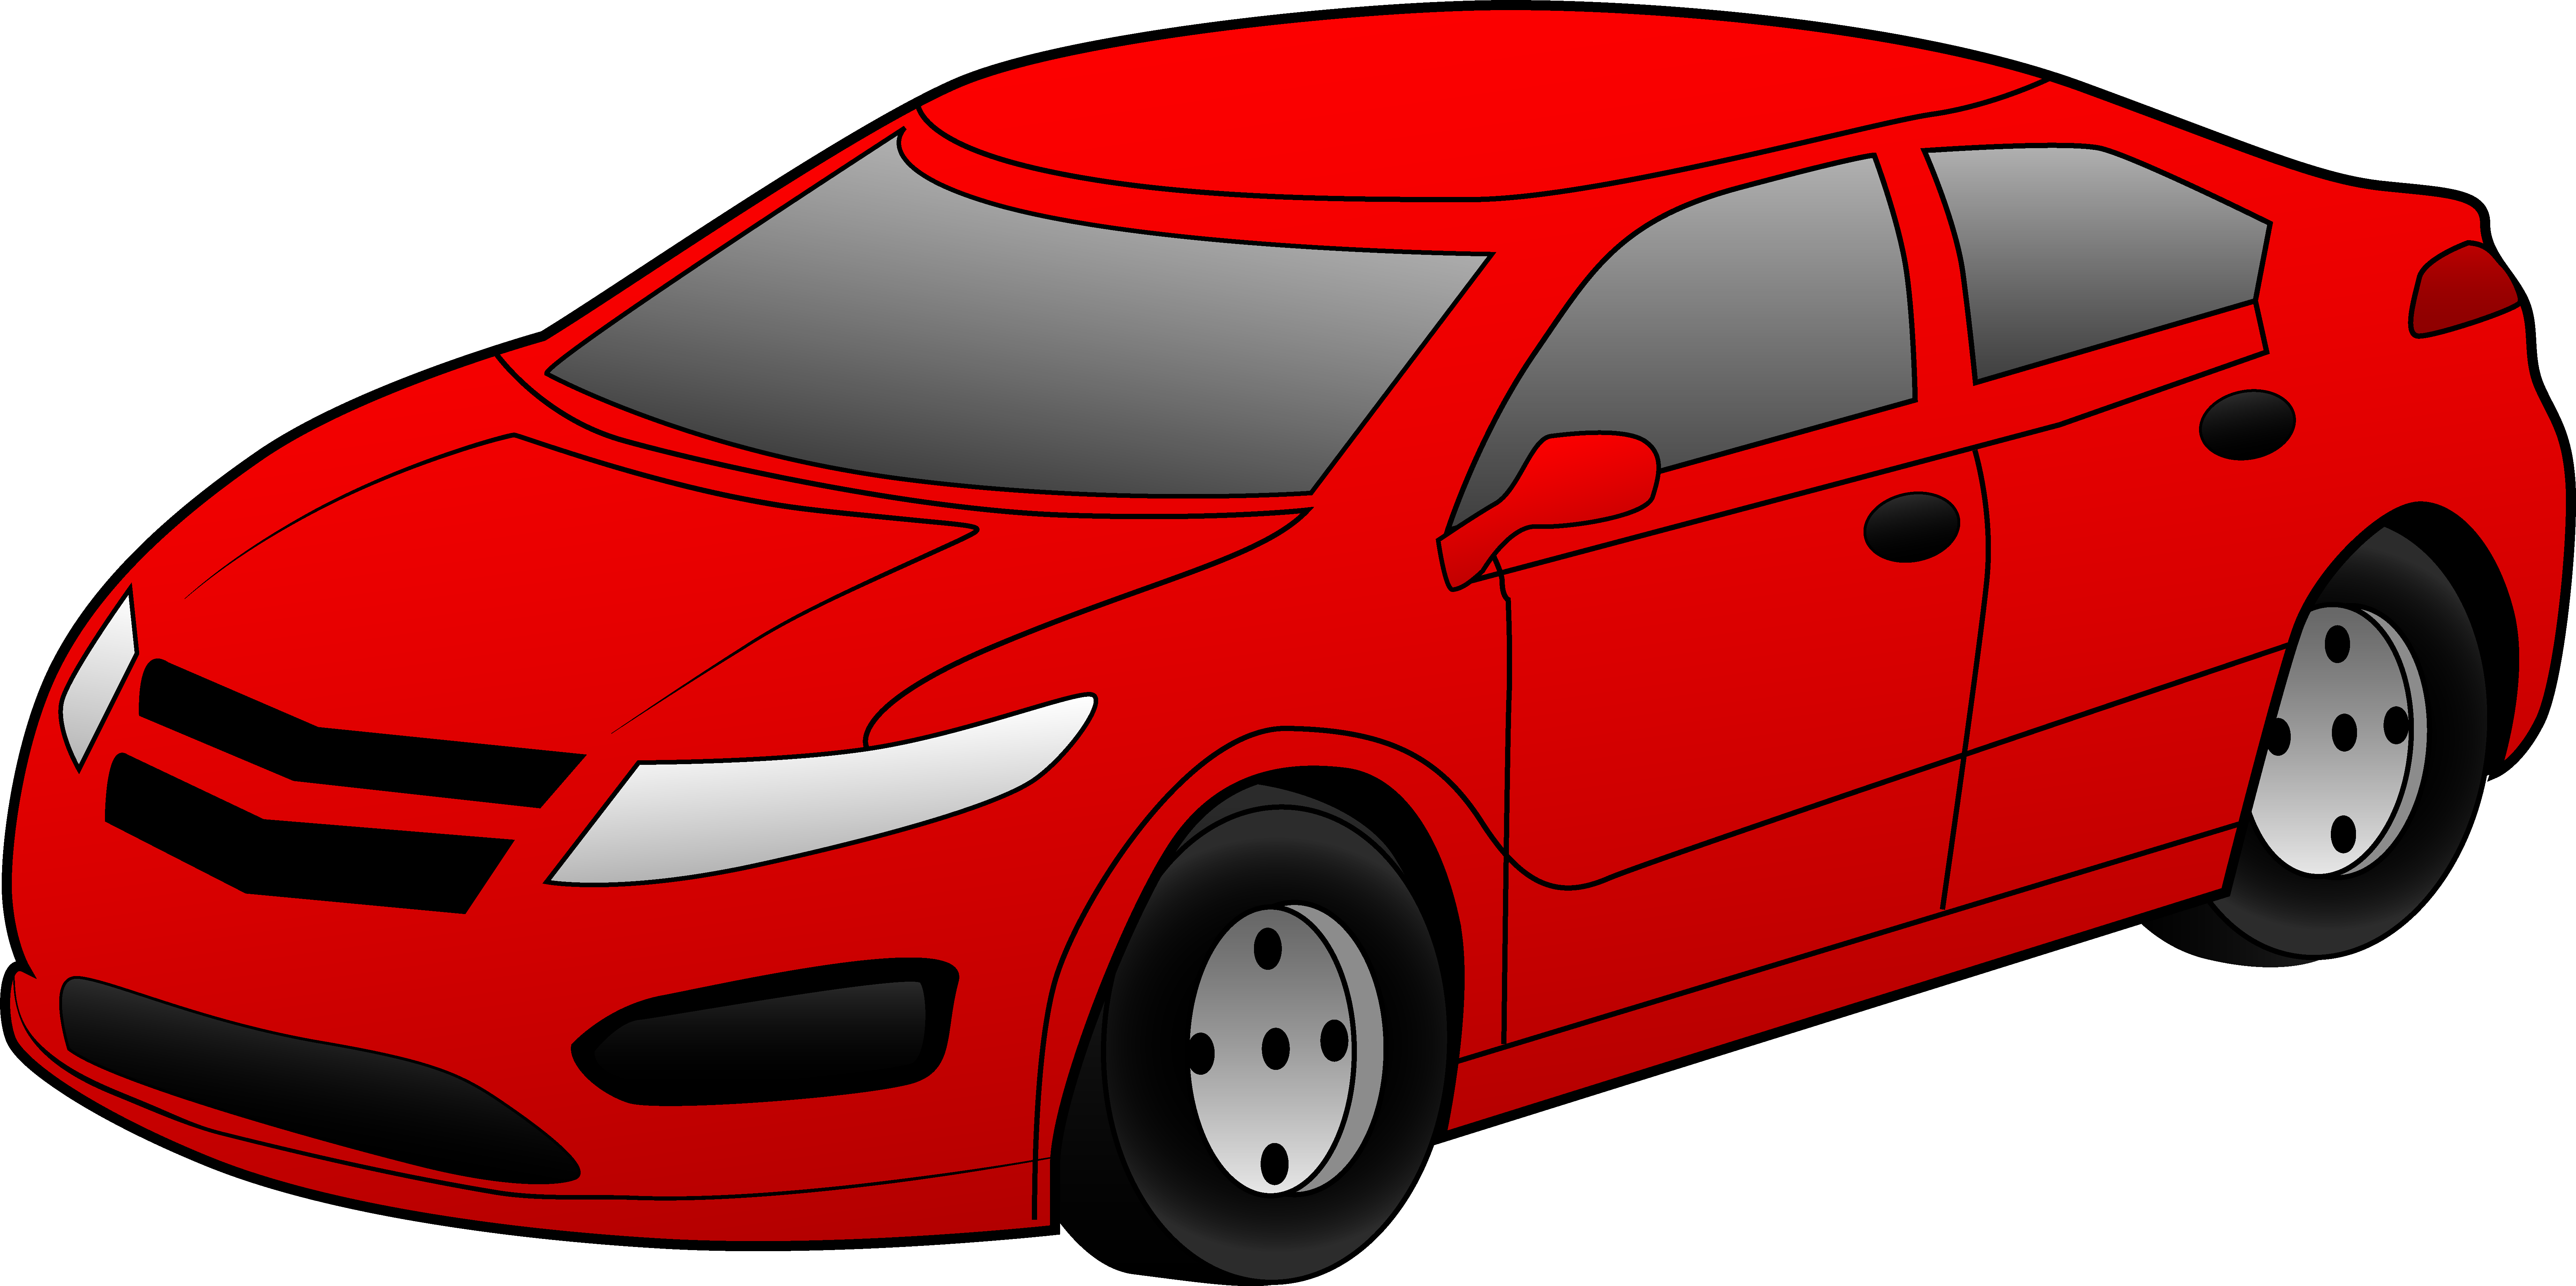 http://cliparts.co/cliparts/kTK/nA8/kTKnA8xbc.png